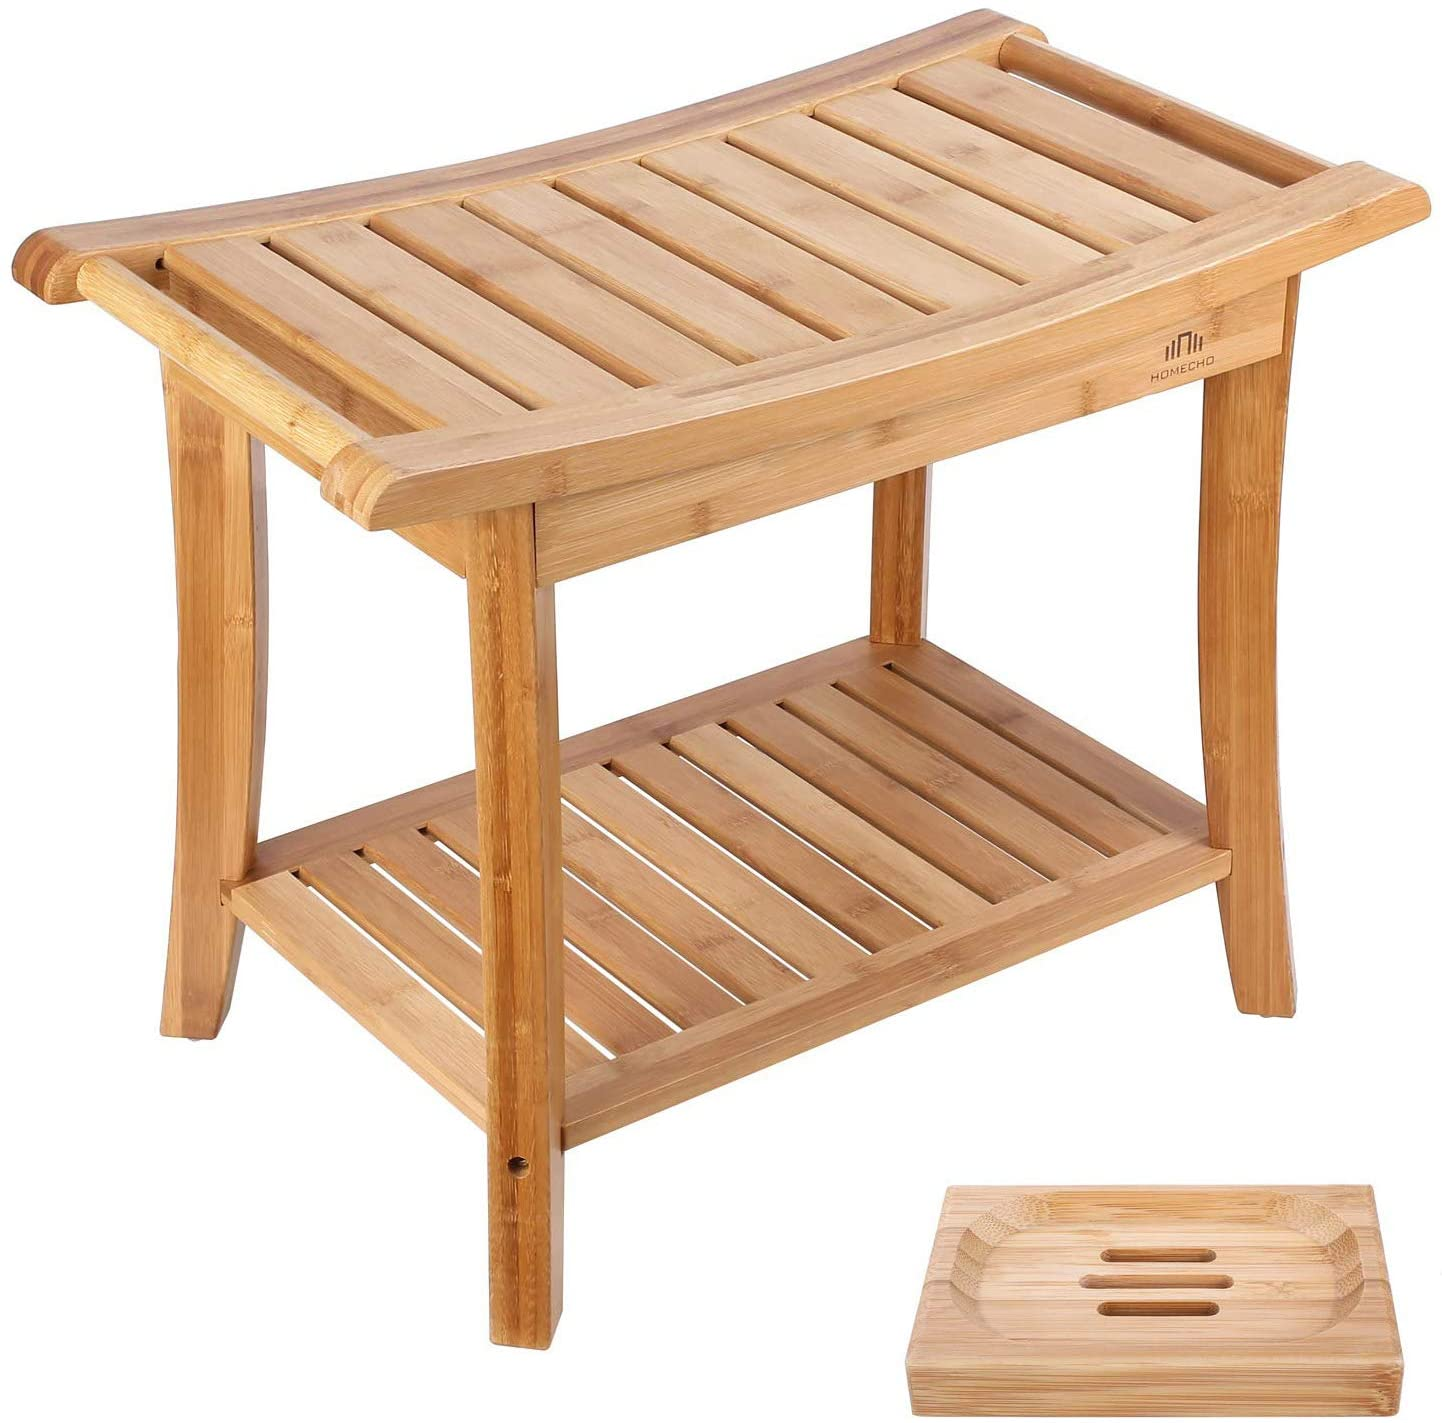 HOMECHO Bamboo Shower Bench Stool Seat with Shelves Waterproof Wooden Bath Spa Bathroom Storage Organizer